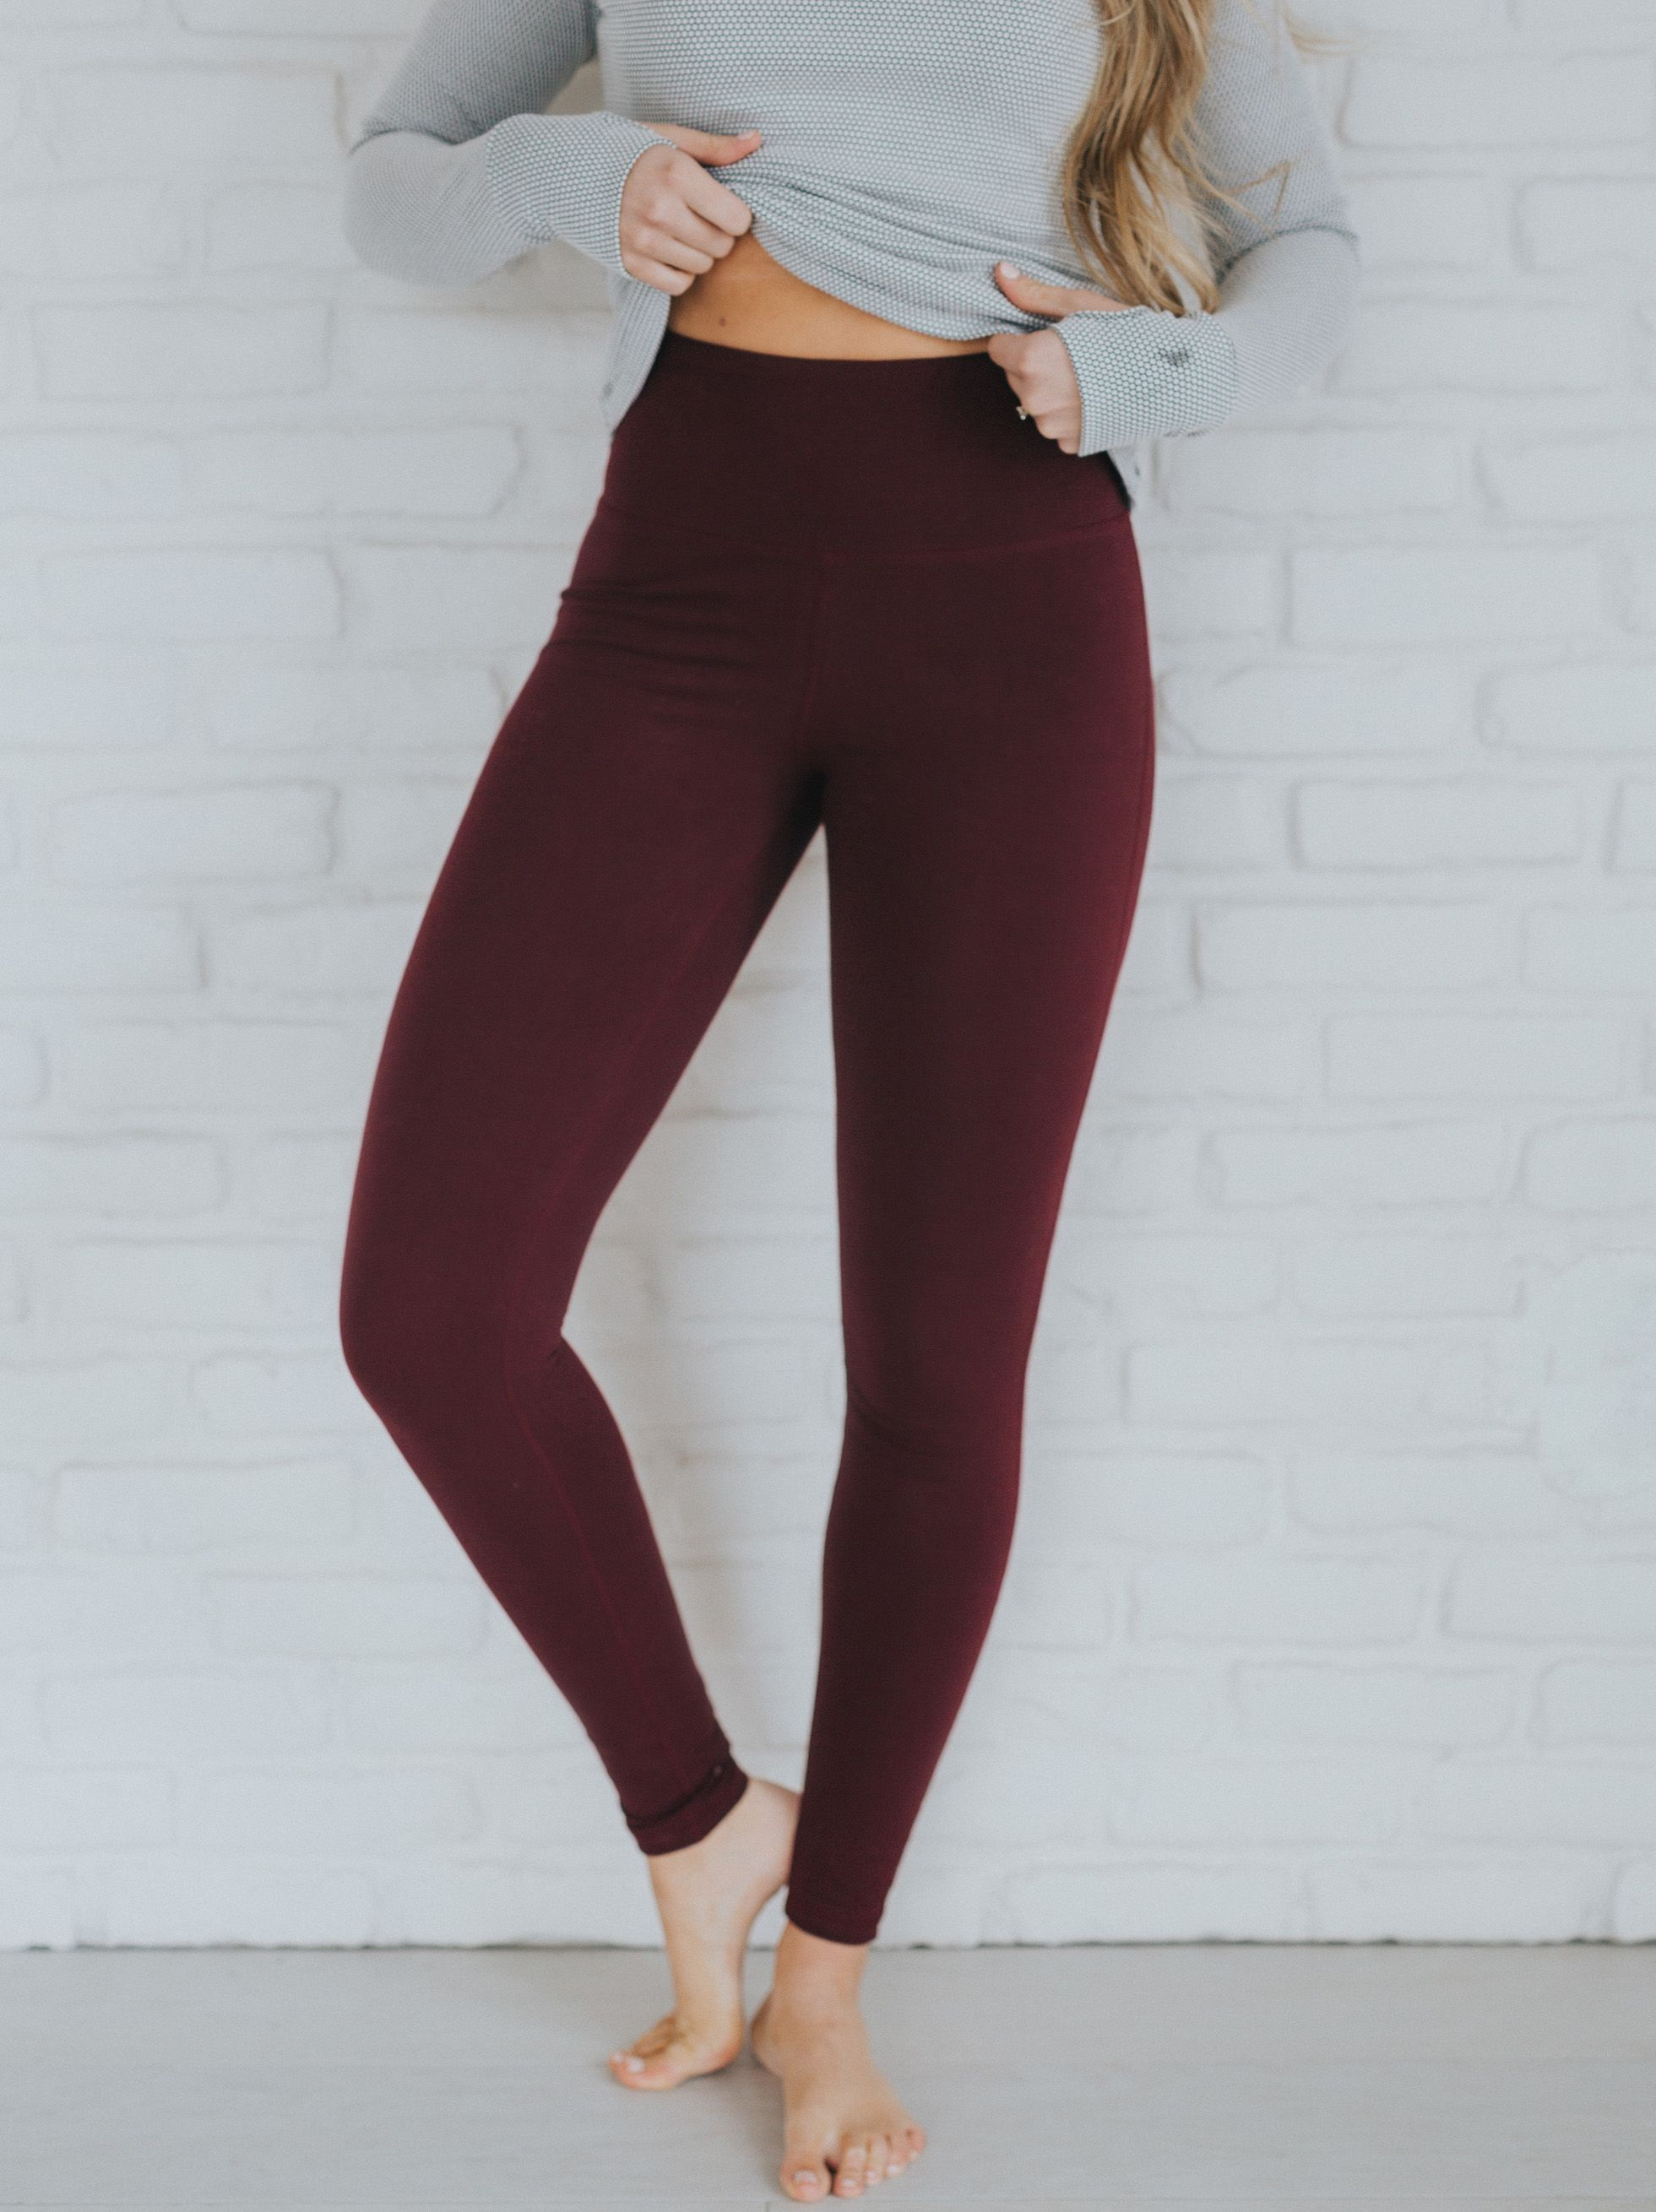 9033f9a08403 NEW High Waisted Wine Leggings! These are slimming